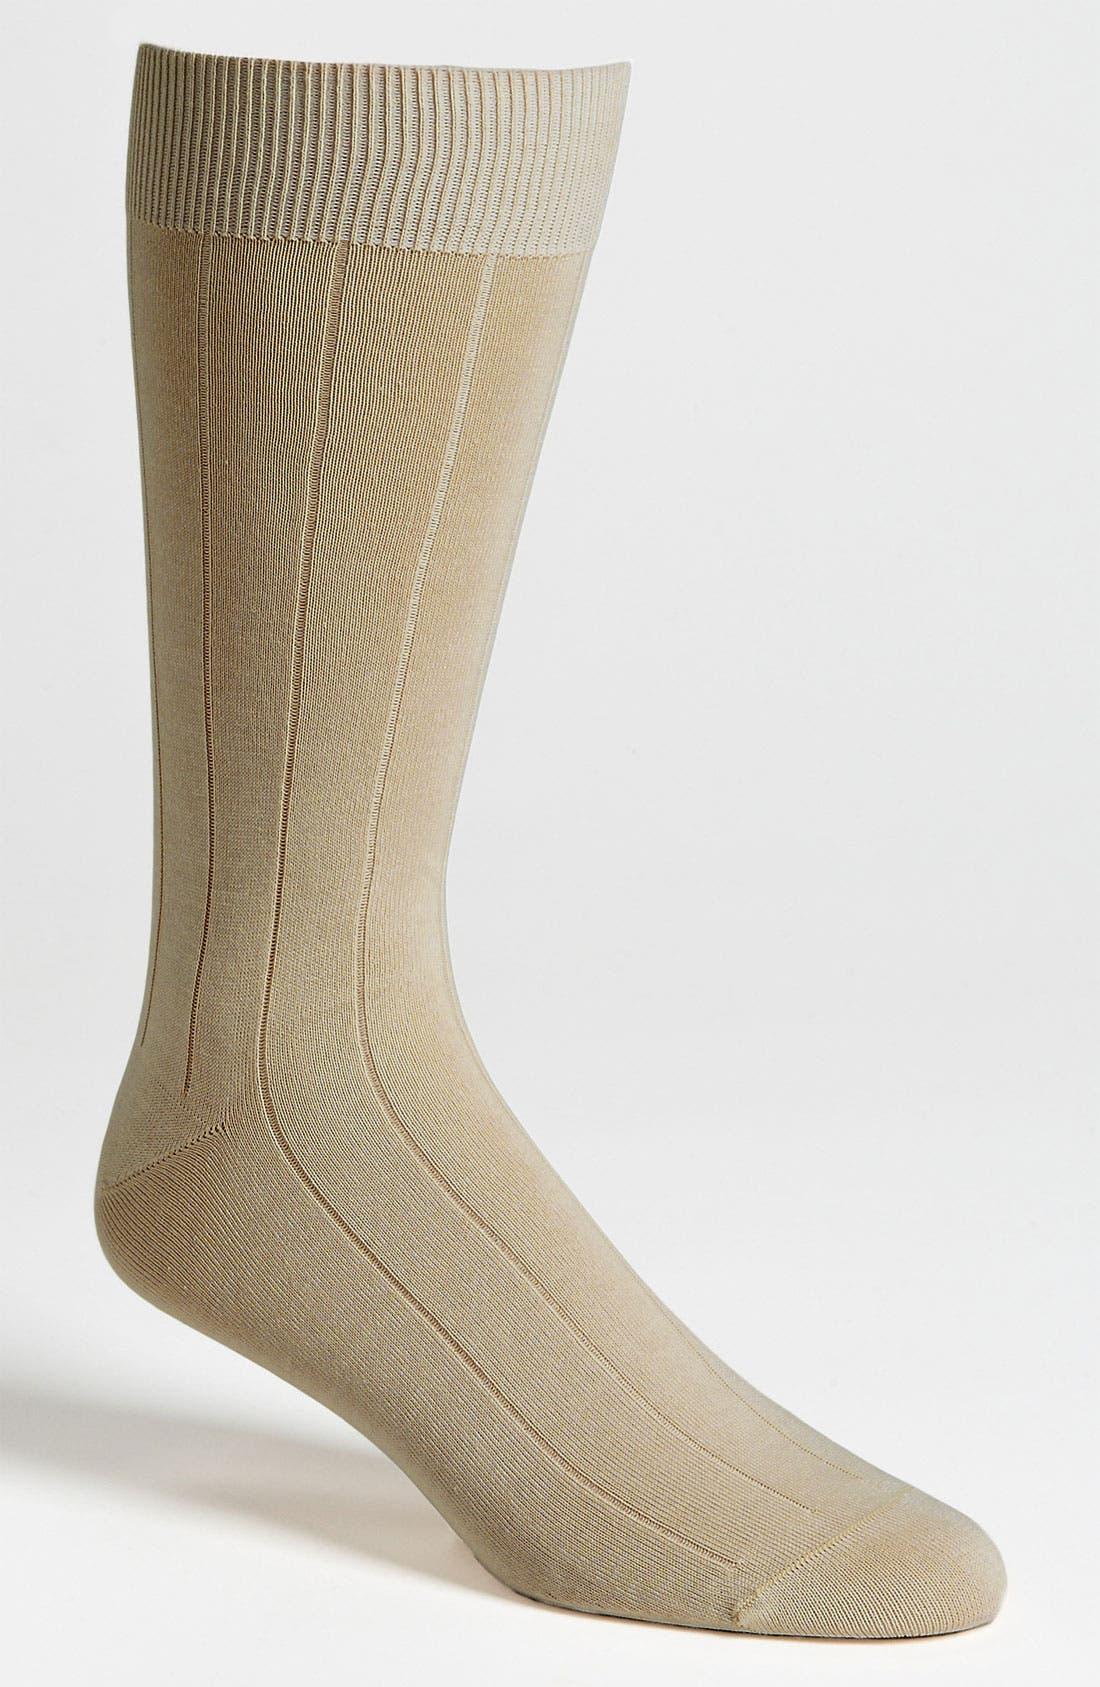 Main Image - Pantherella Sea Island Cotton Socks